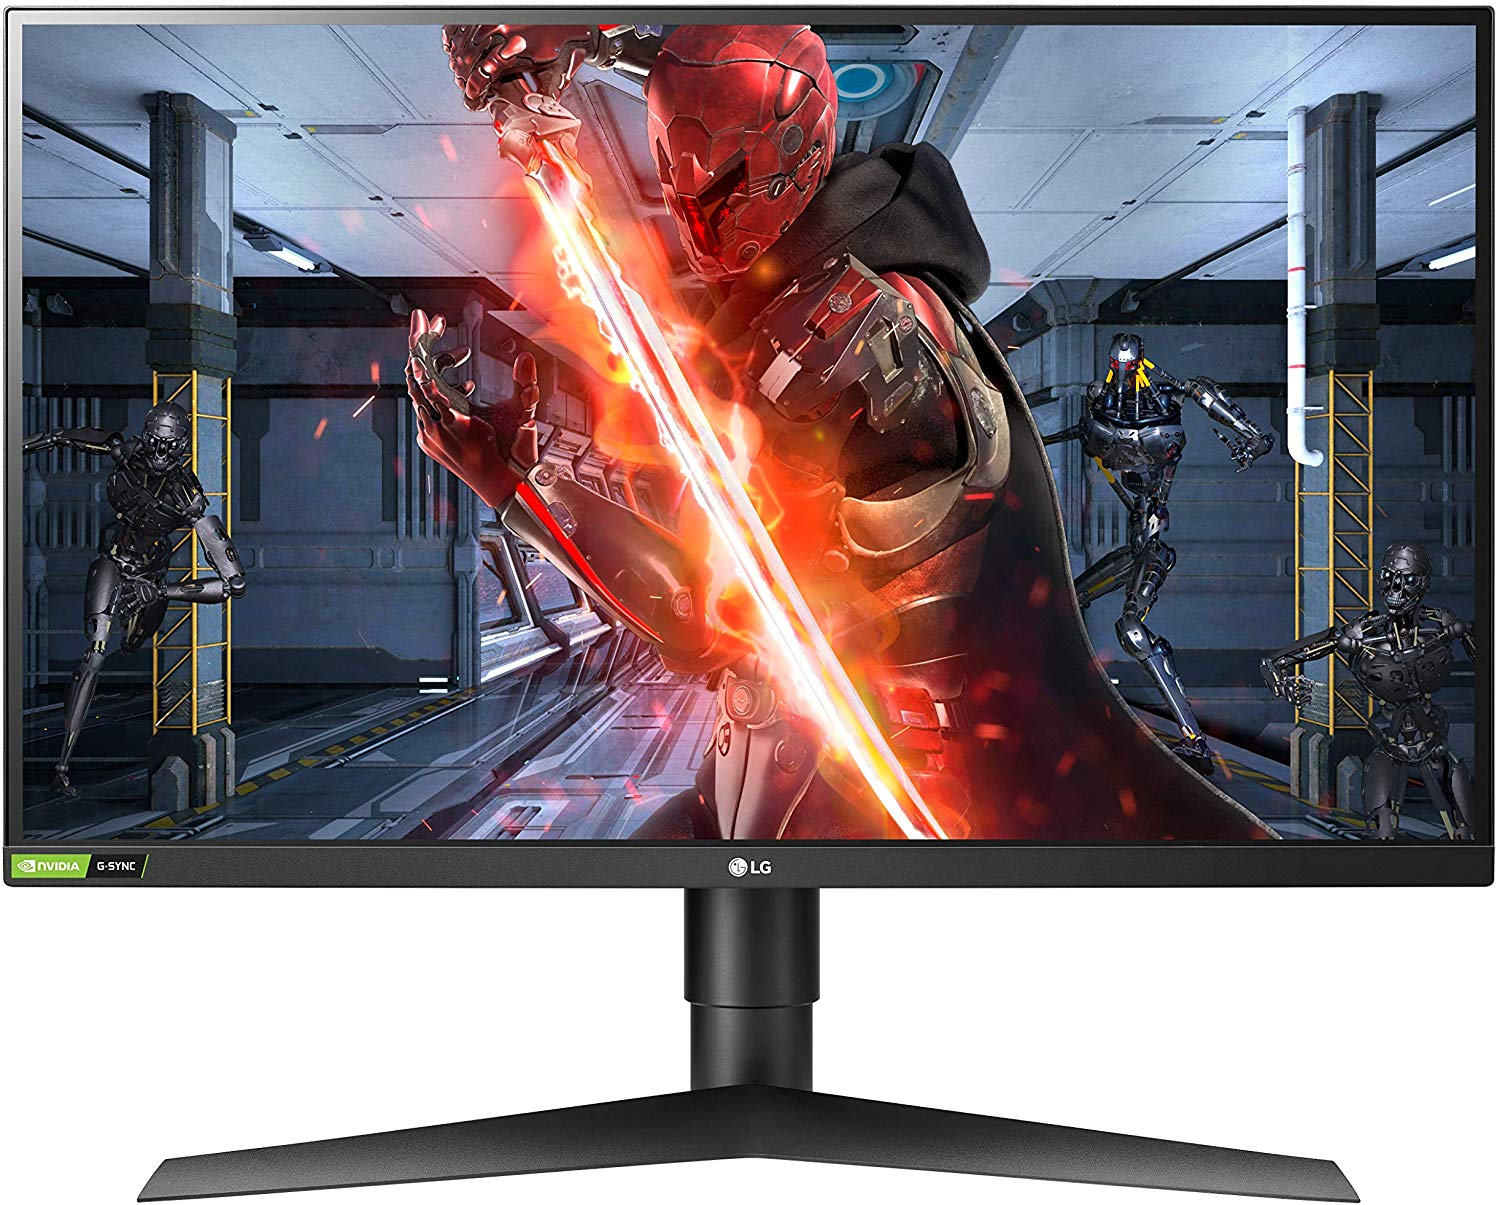 LG 27GL850-B - Monitor Gaming amazon